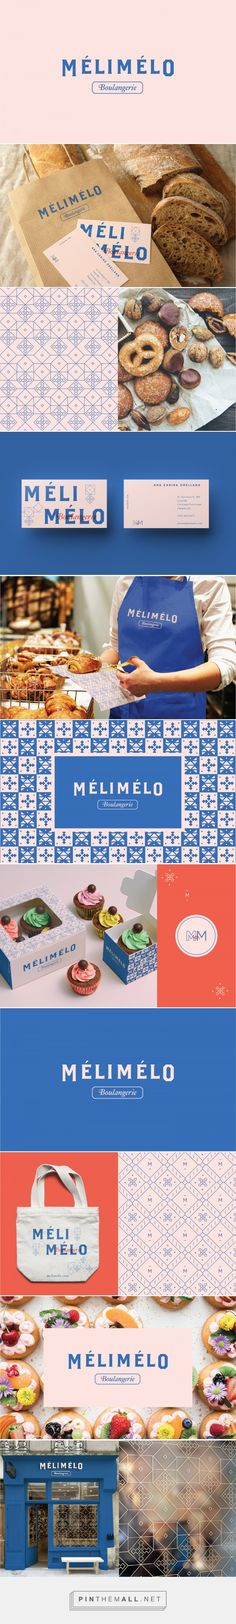 Mélimélo Bakery branding by Daniela Arcila on Behance